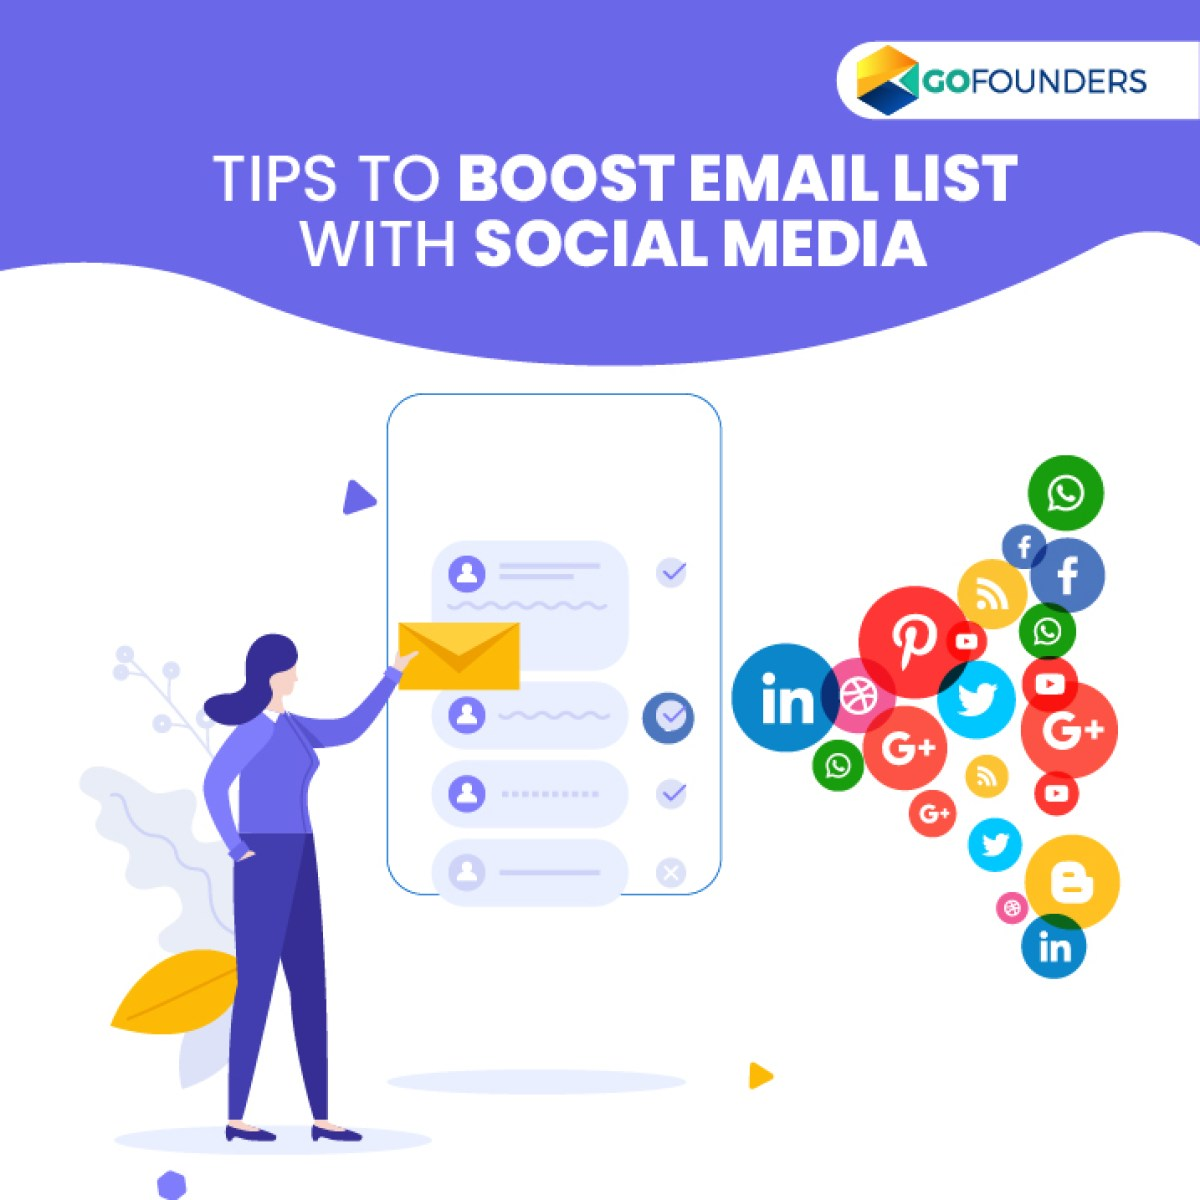 How To Make Effective Use Of Social Media To Boost Your Email List?